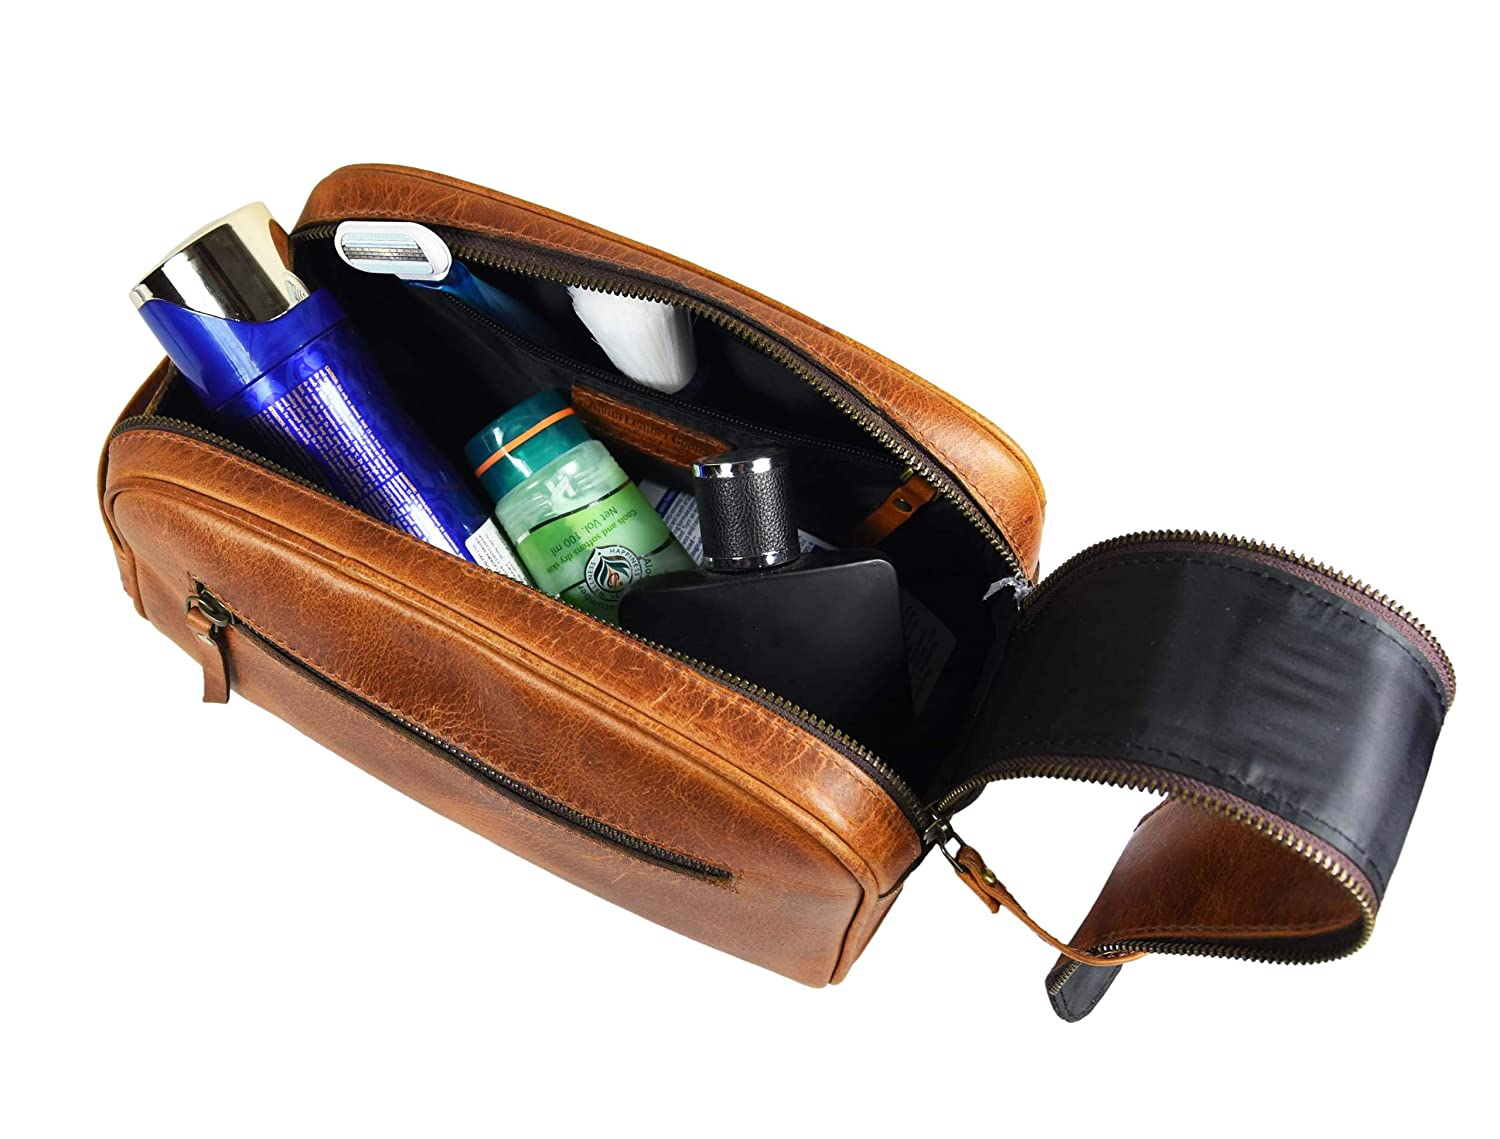 Caramel - Dual Zipper King-Size Handcrafted Vintage Dopp Kit By Aaron Leather Goods 10 Premium Leather Toiletry Travel Pouch With Waterproof Lining